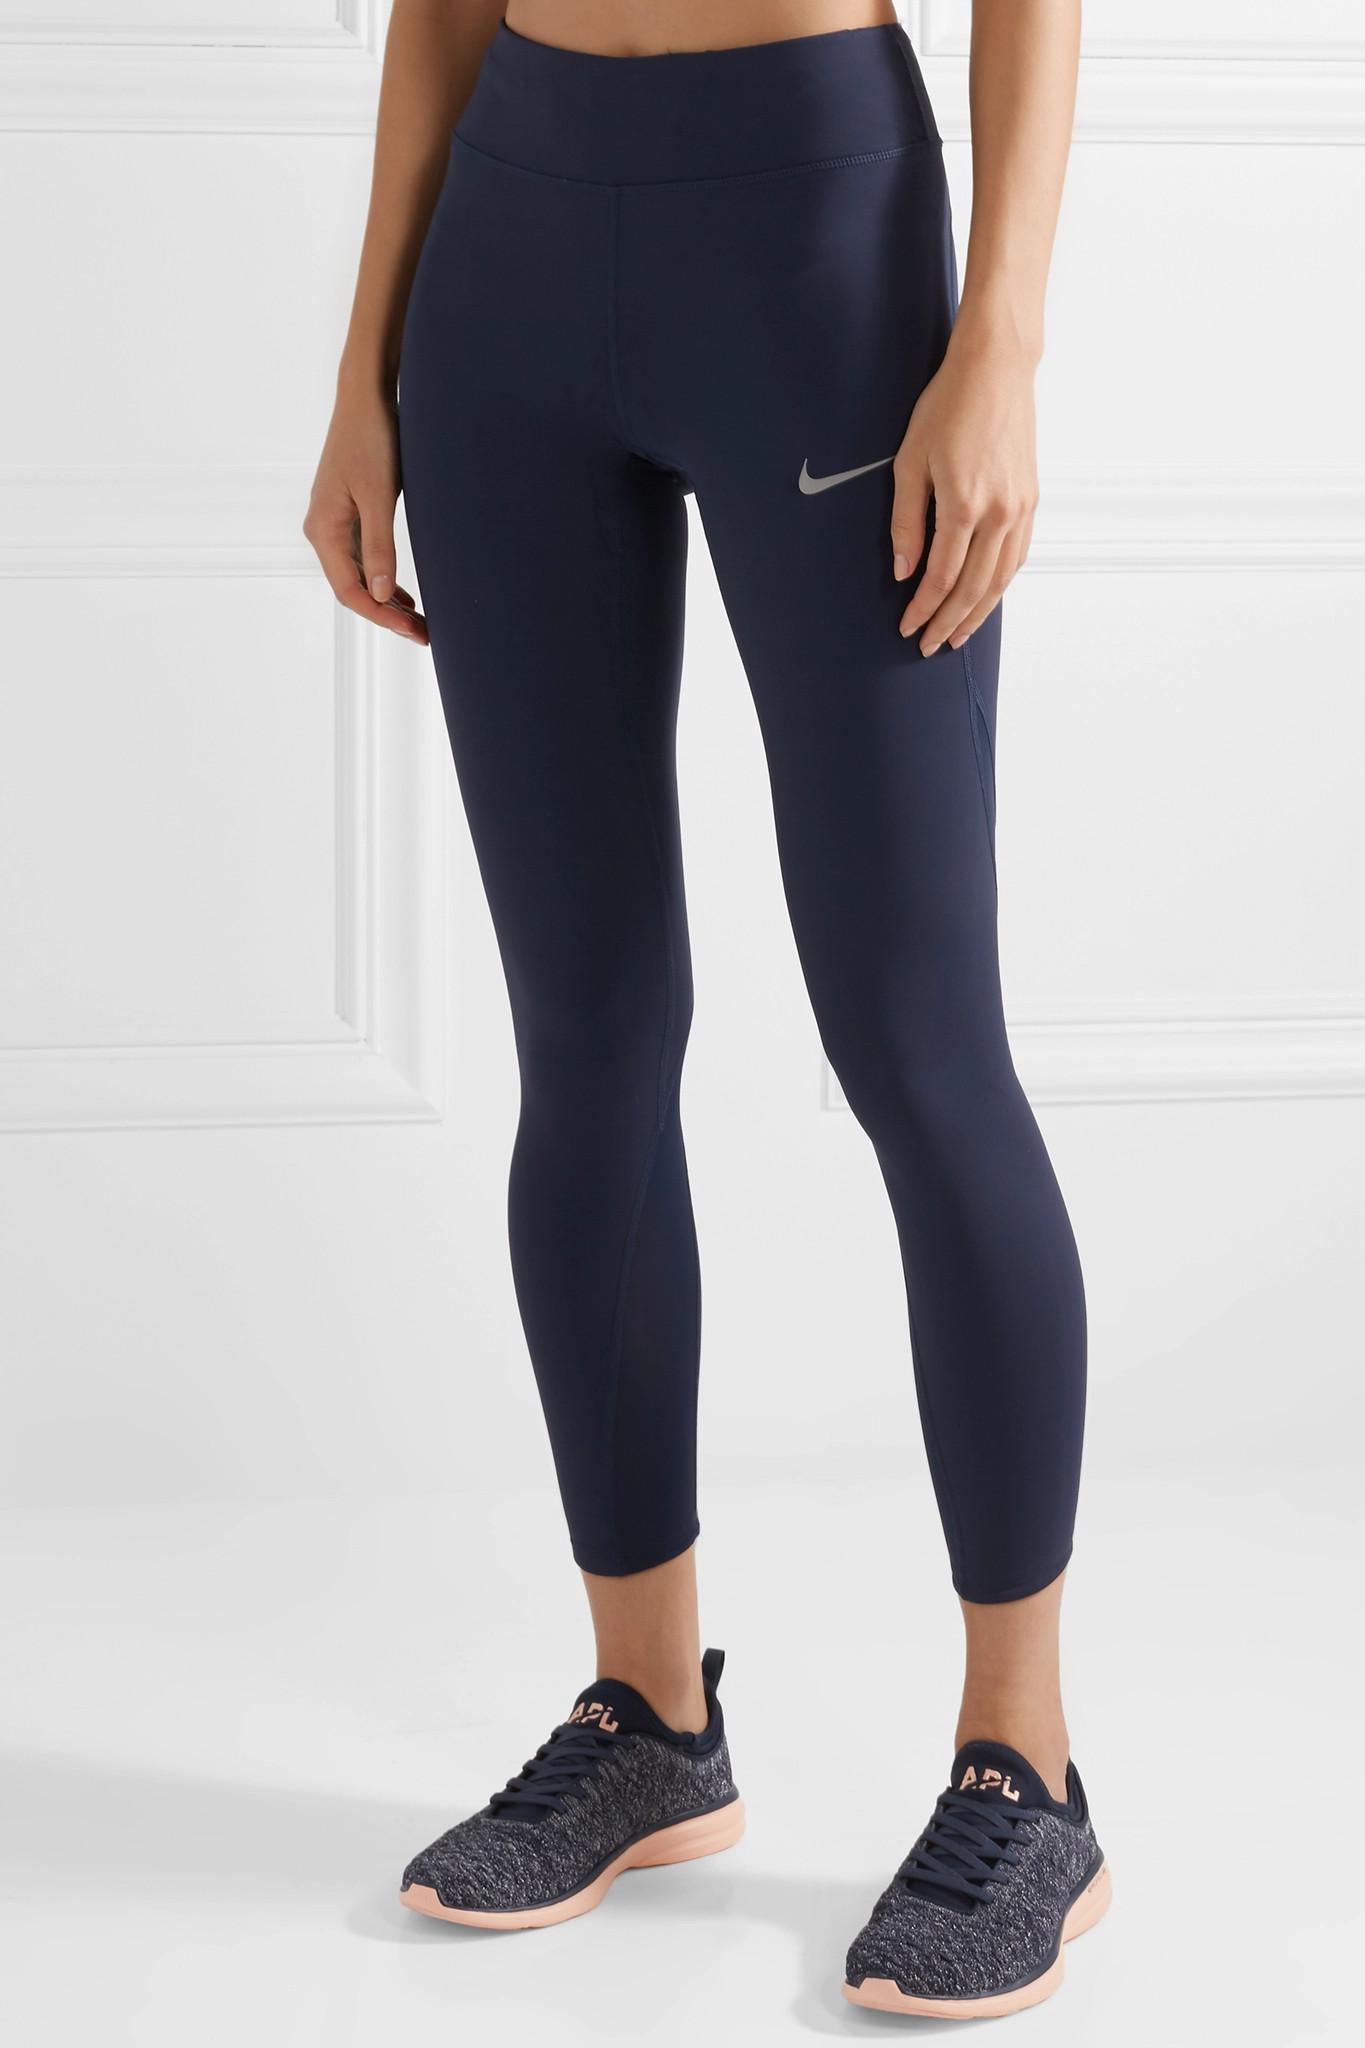 61c267651ff979 Nike Power Epic Lux Mesh-paneled Dri-fit Stretch Leggings in Blue - Lyst